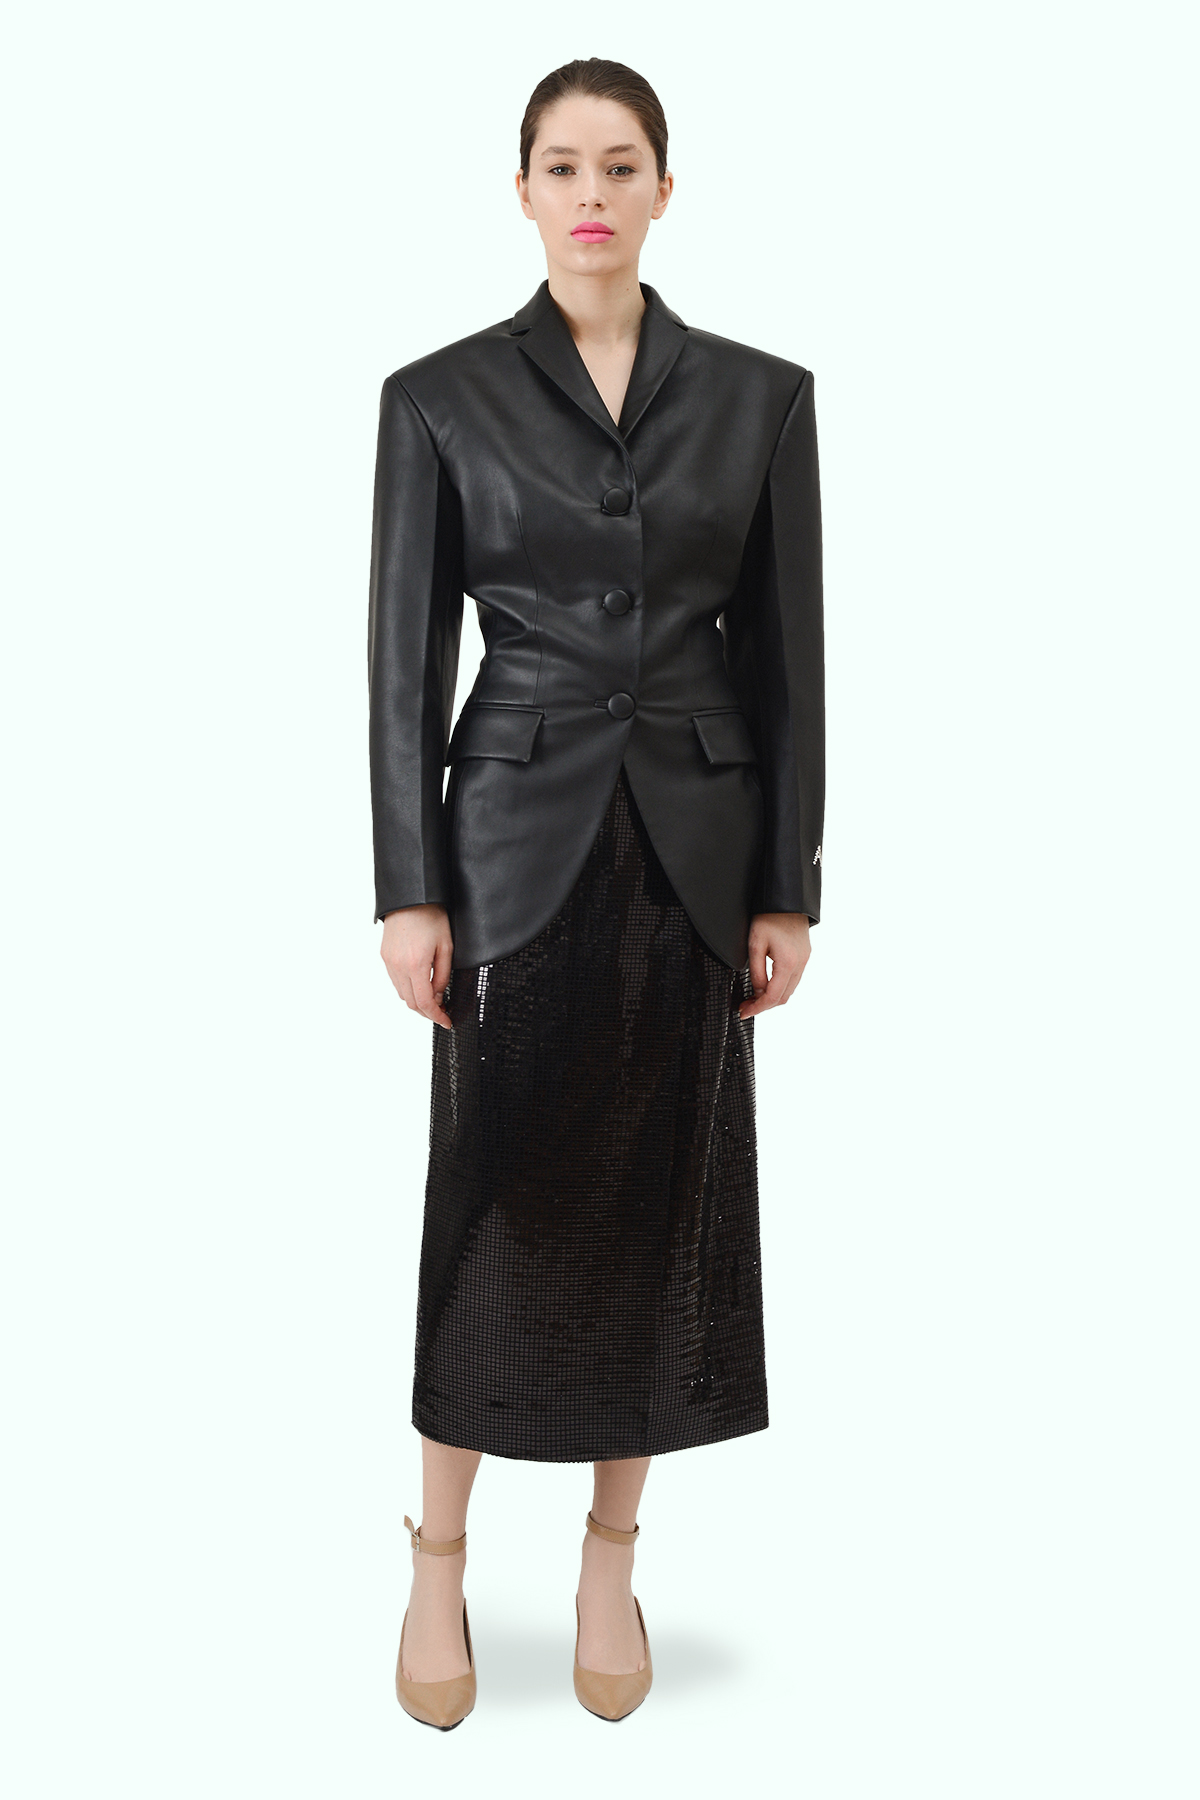 Black vegan leather fitted waist blazer